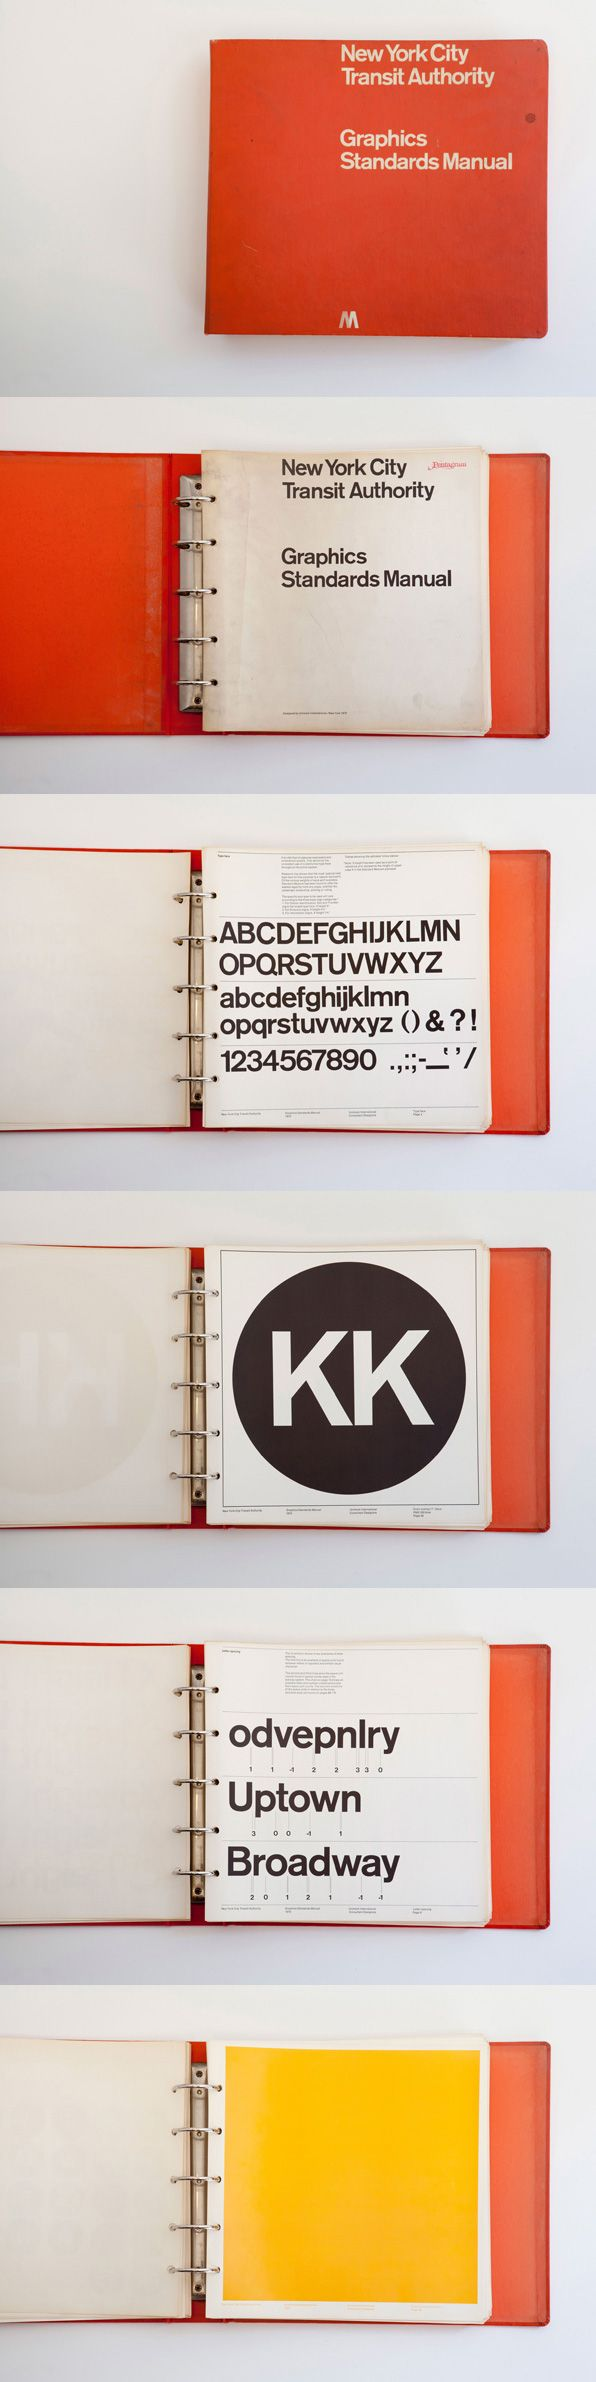 First edition NYCTA Graphics Standards Manual designed by Massimo Vignelli and Bob Noorda of Unimark International (1970) :: http://thestandardsmanual.com repinned by Awake — designedbyawake.com